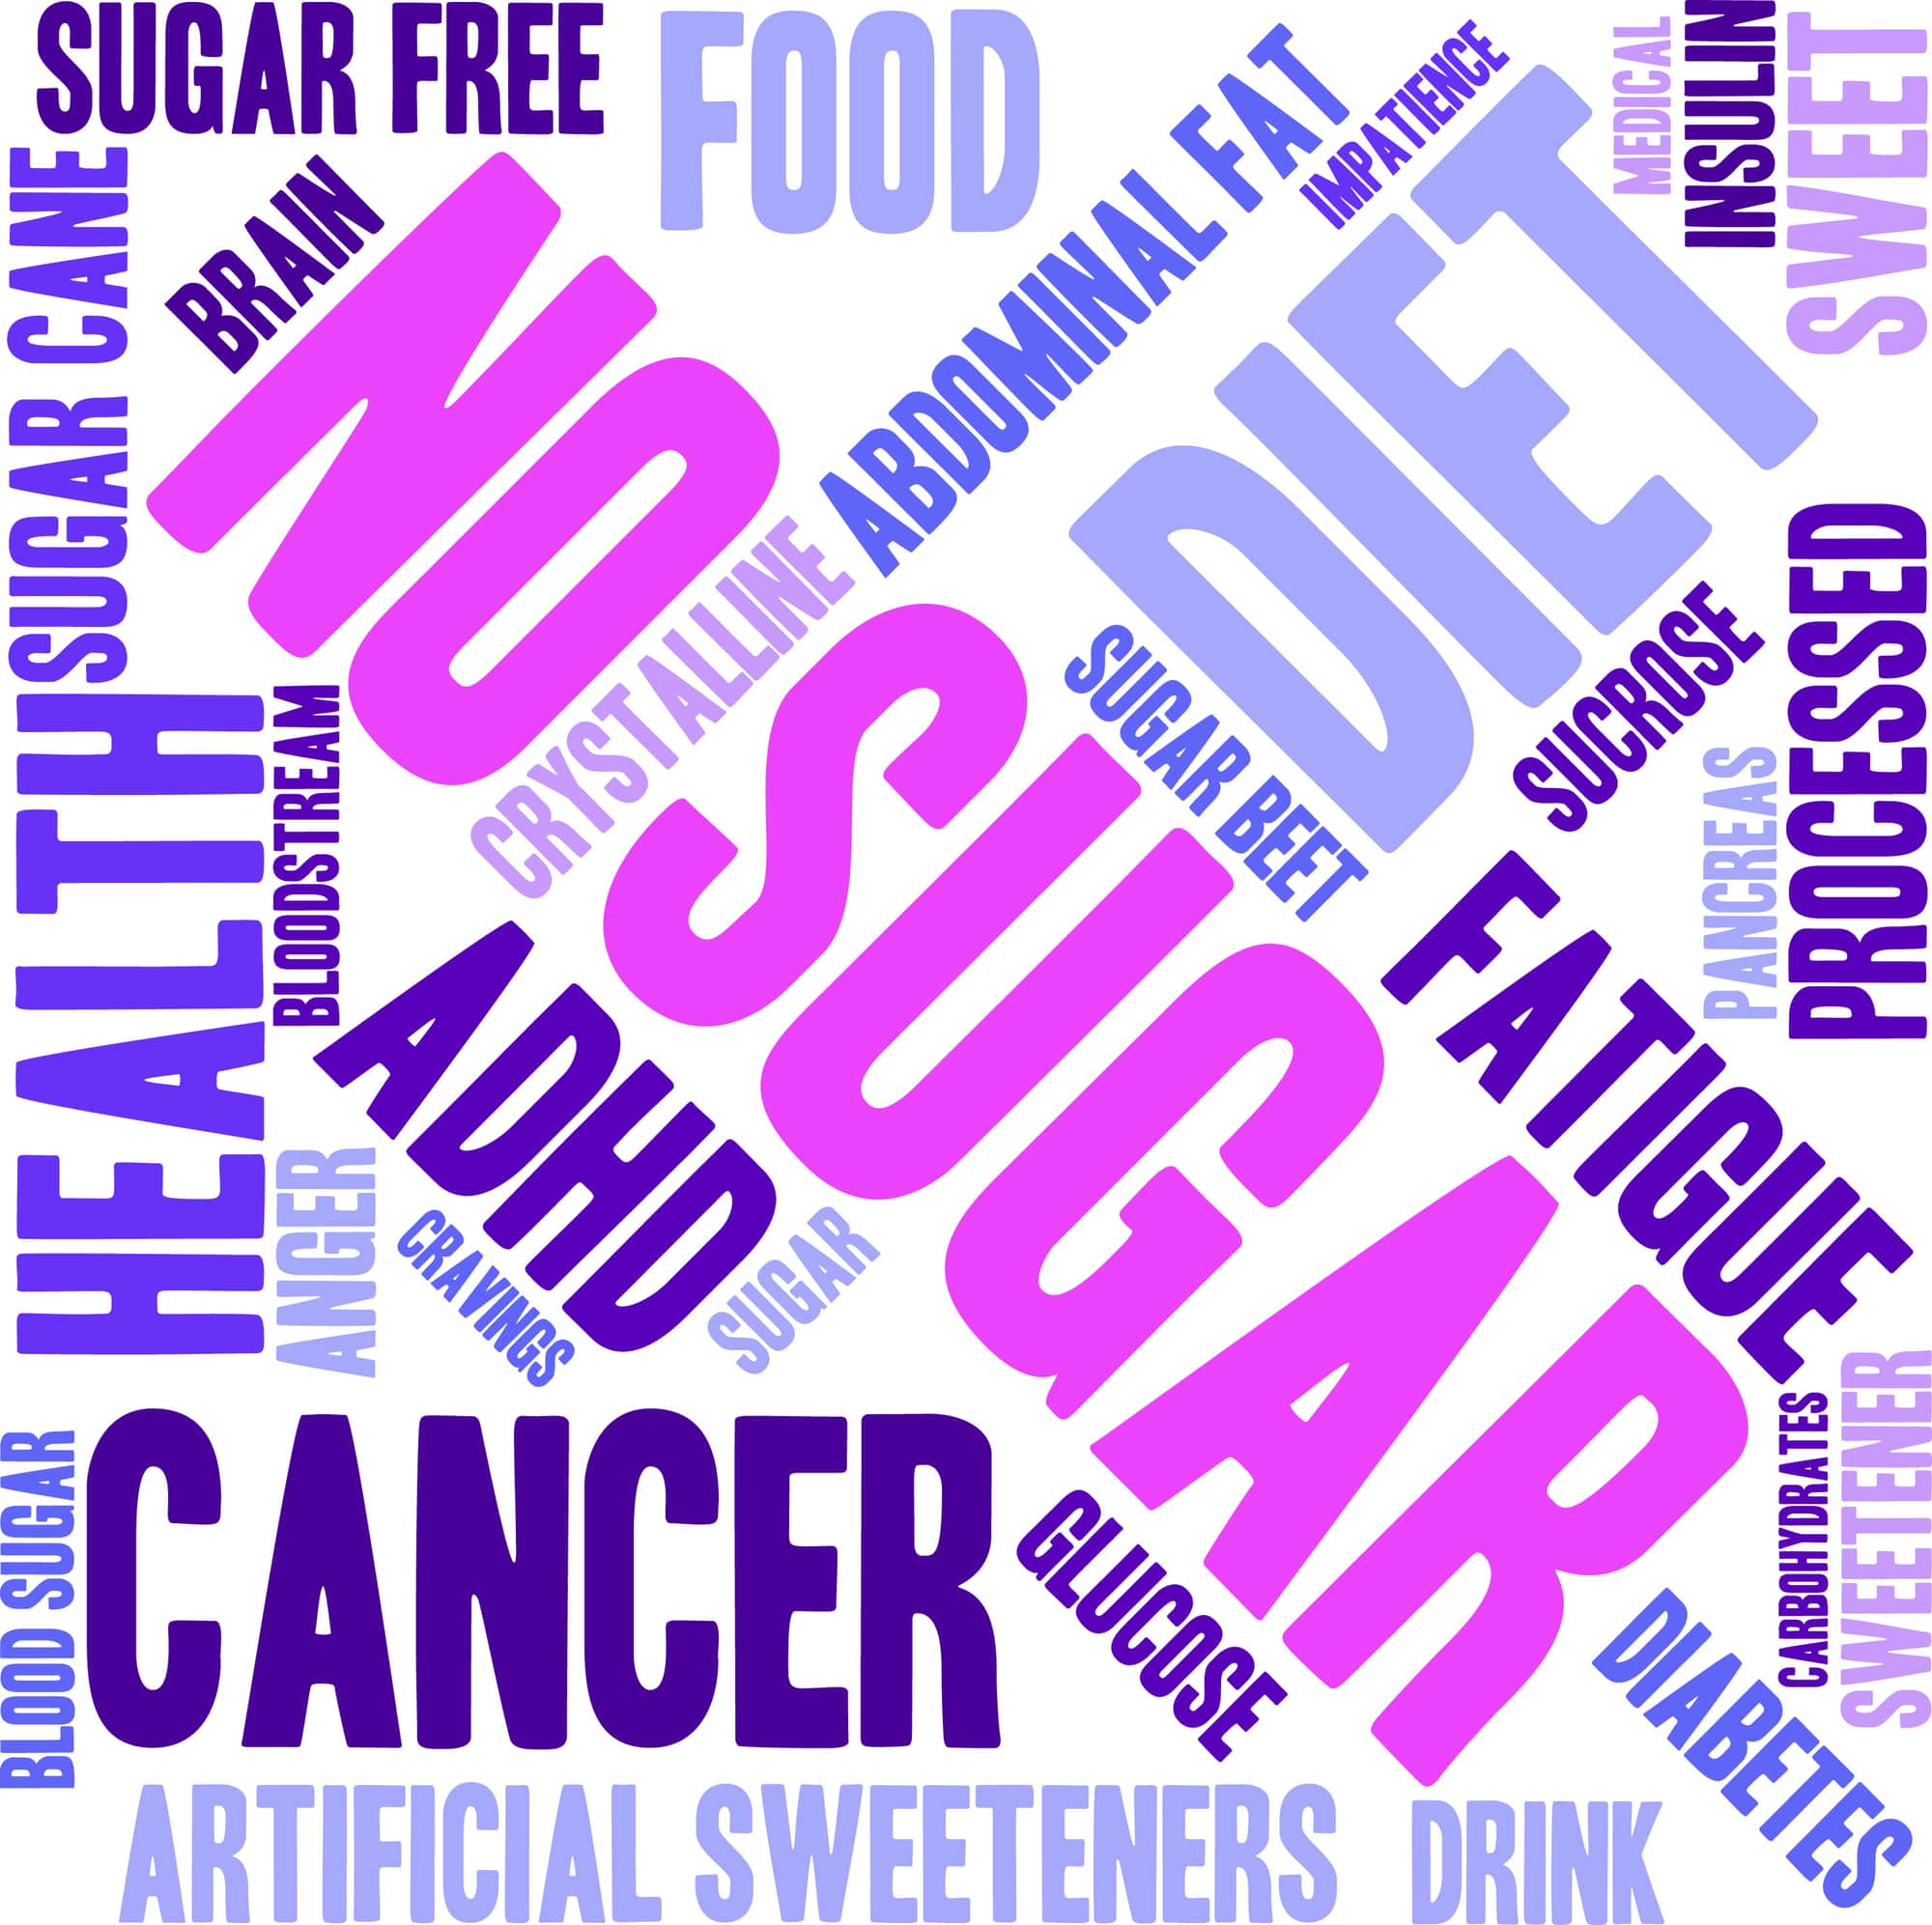 sugar and cancer